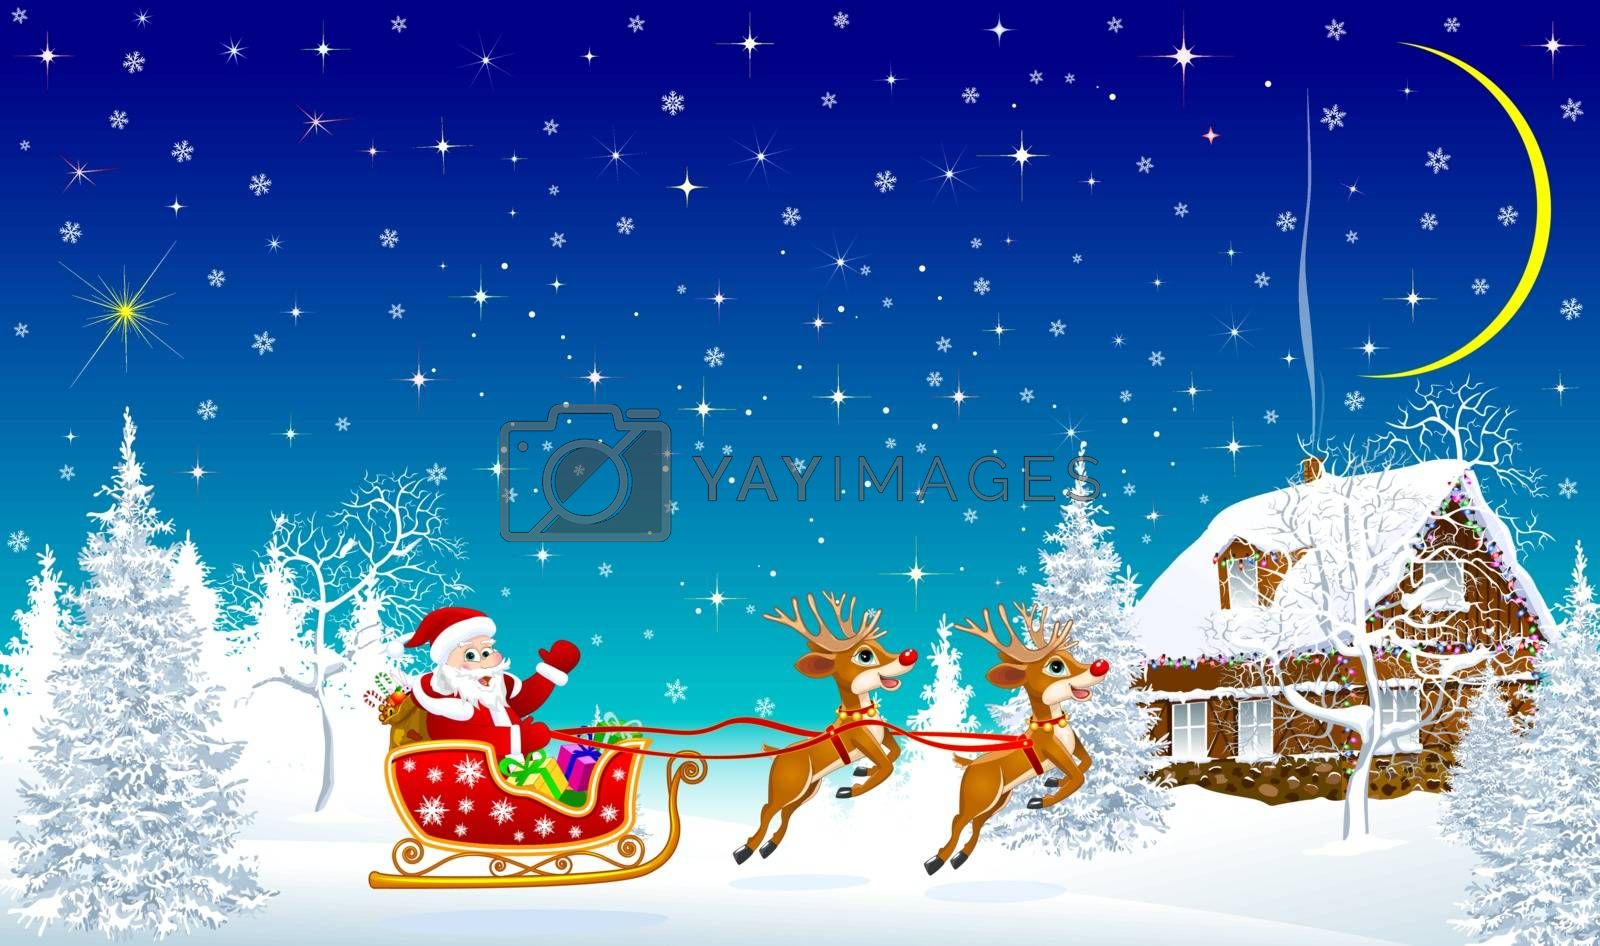 Royalty free image of Santa with reindeer on sleigh on Christmas night by liolle